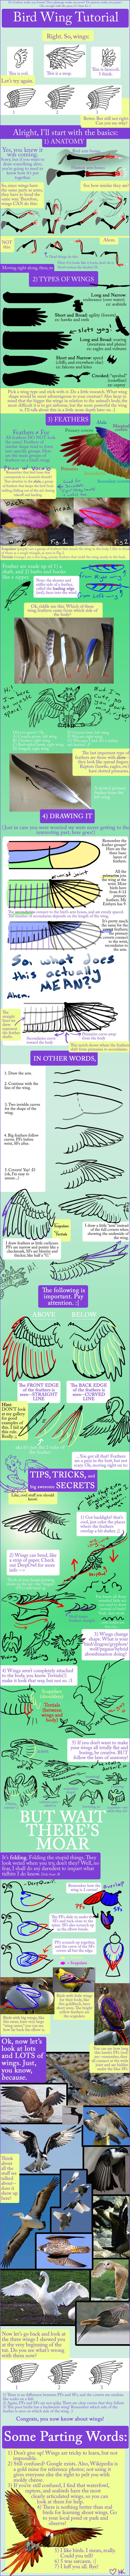 Wing tutorial by TheAntimonyElement via deviantart